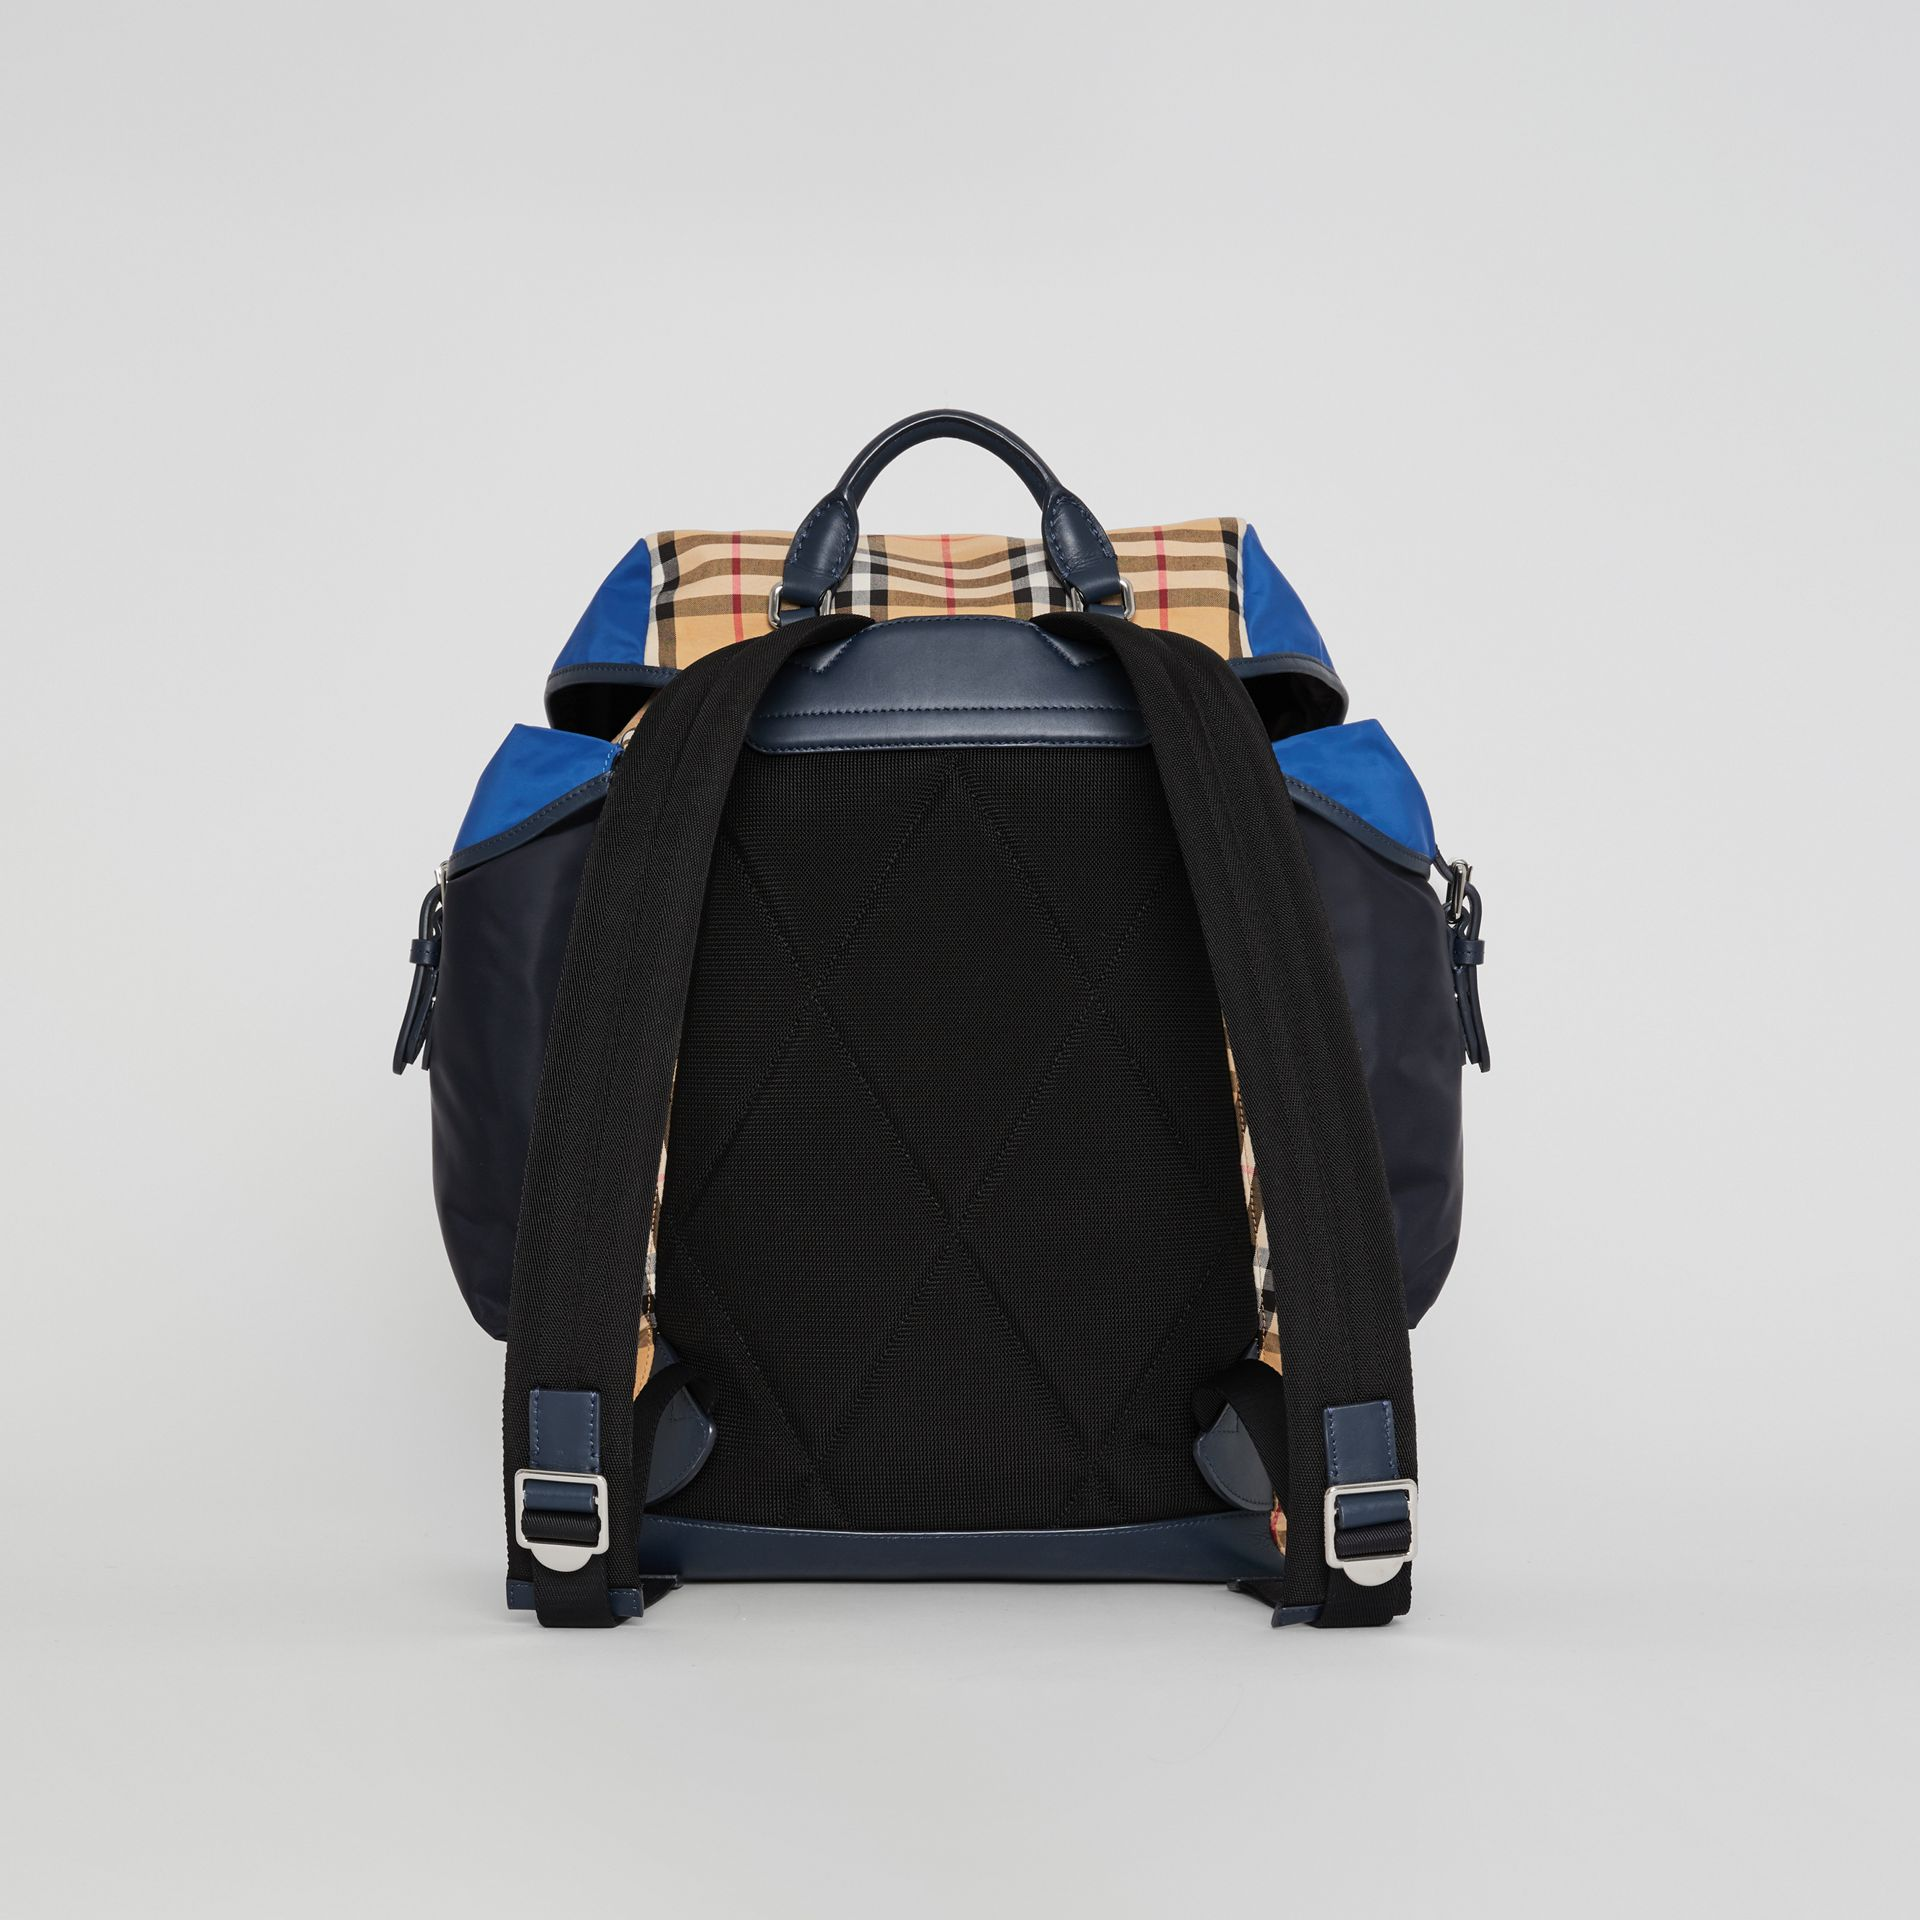 Lederrucksack im Vintage Check- und Colour-Blocking-Design (Marineblau) - Herren | Burberry - Galerie-Bild 7